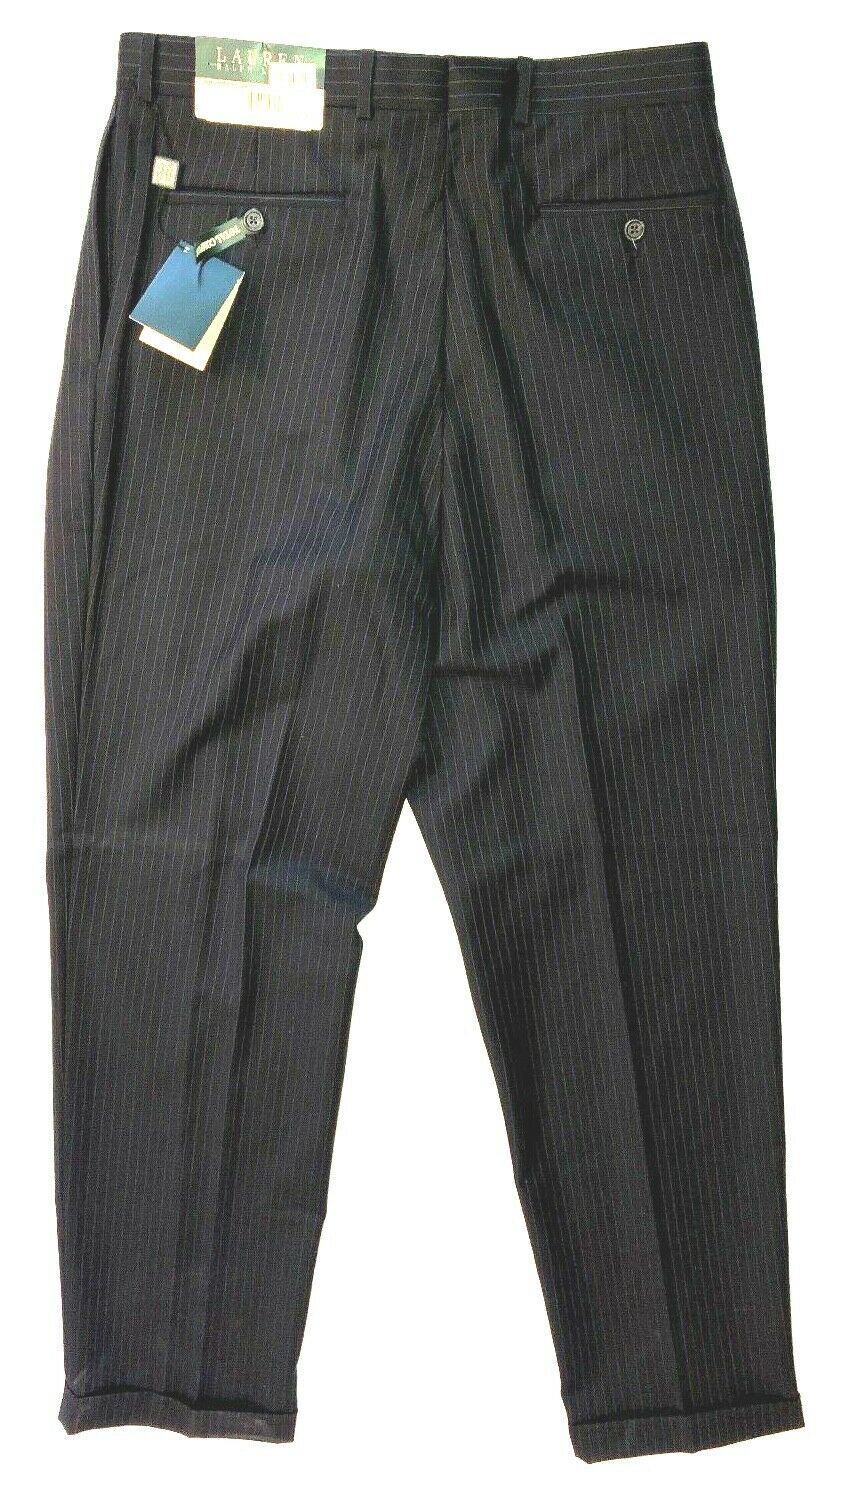 Lauren Ralph Lauren Men's bluee Total Comfort Pants Size 34W x 34L New with Tags